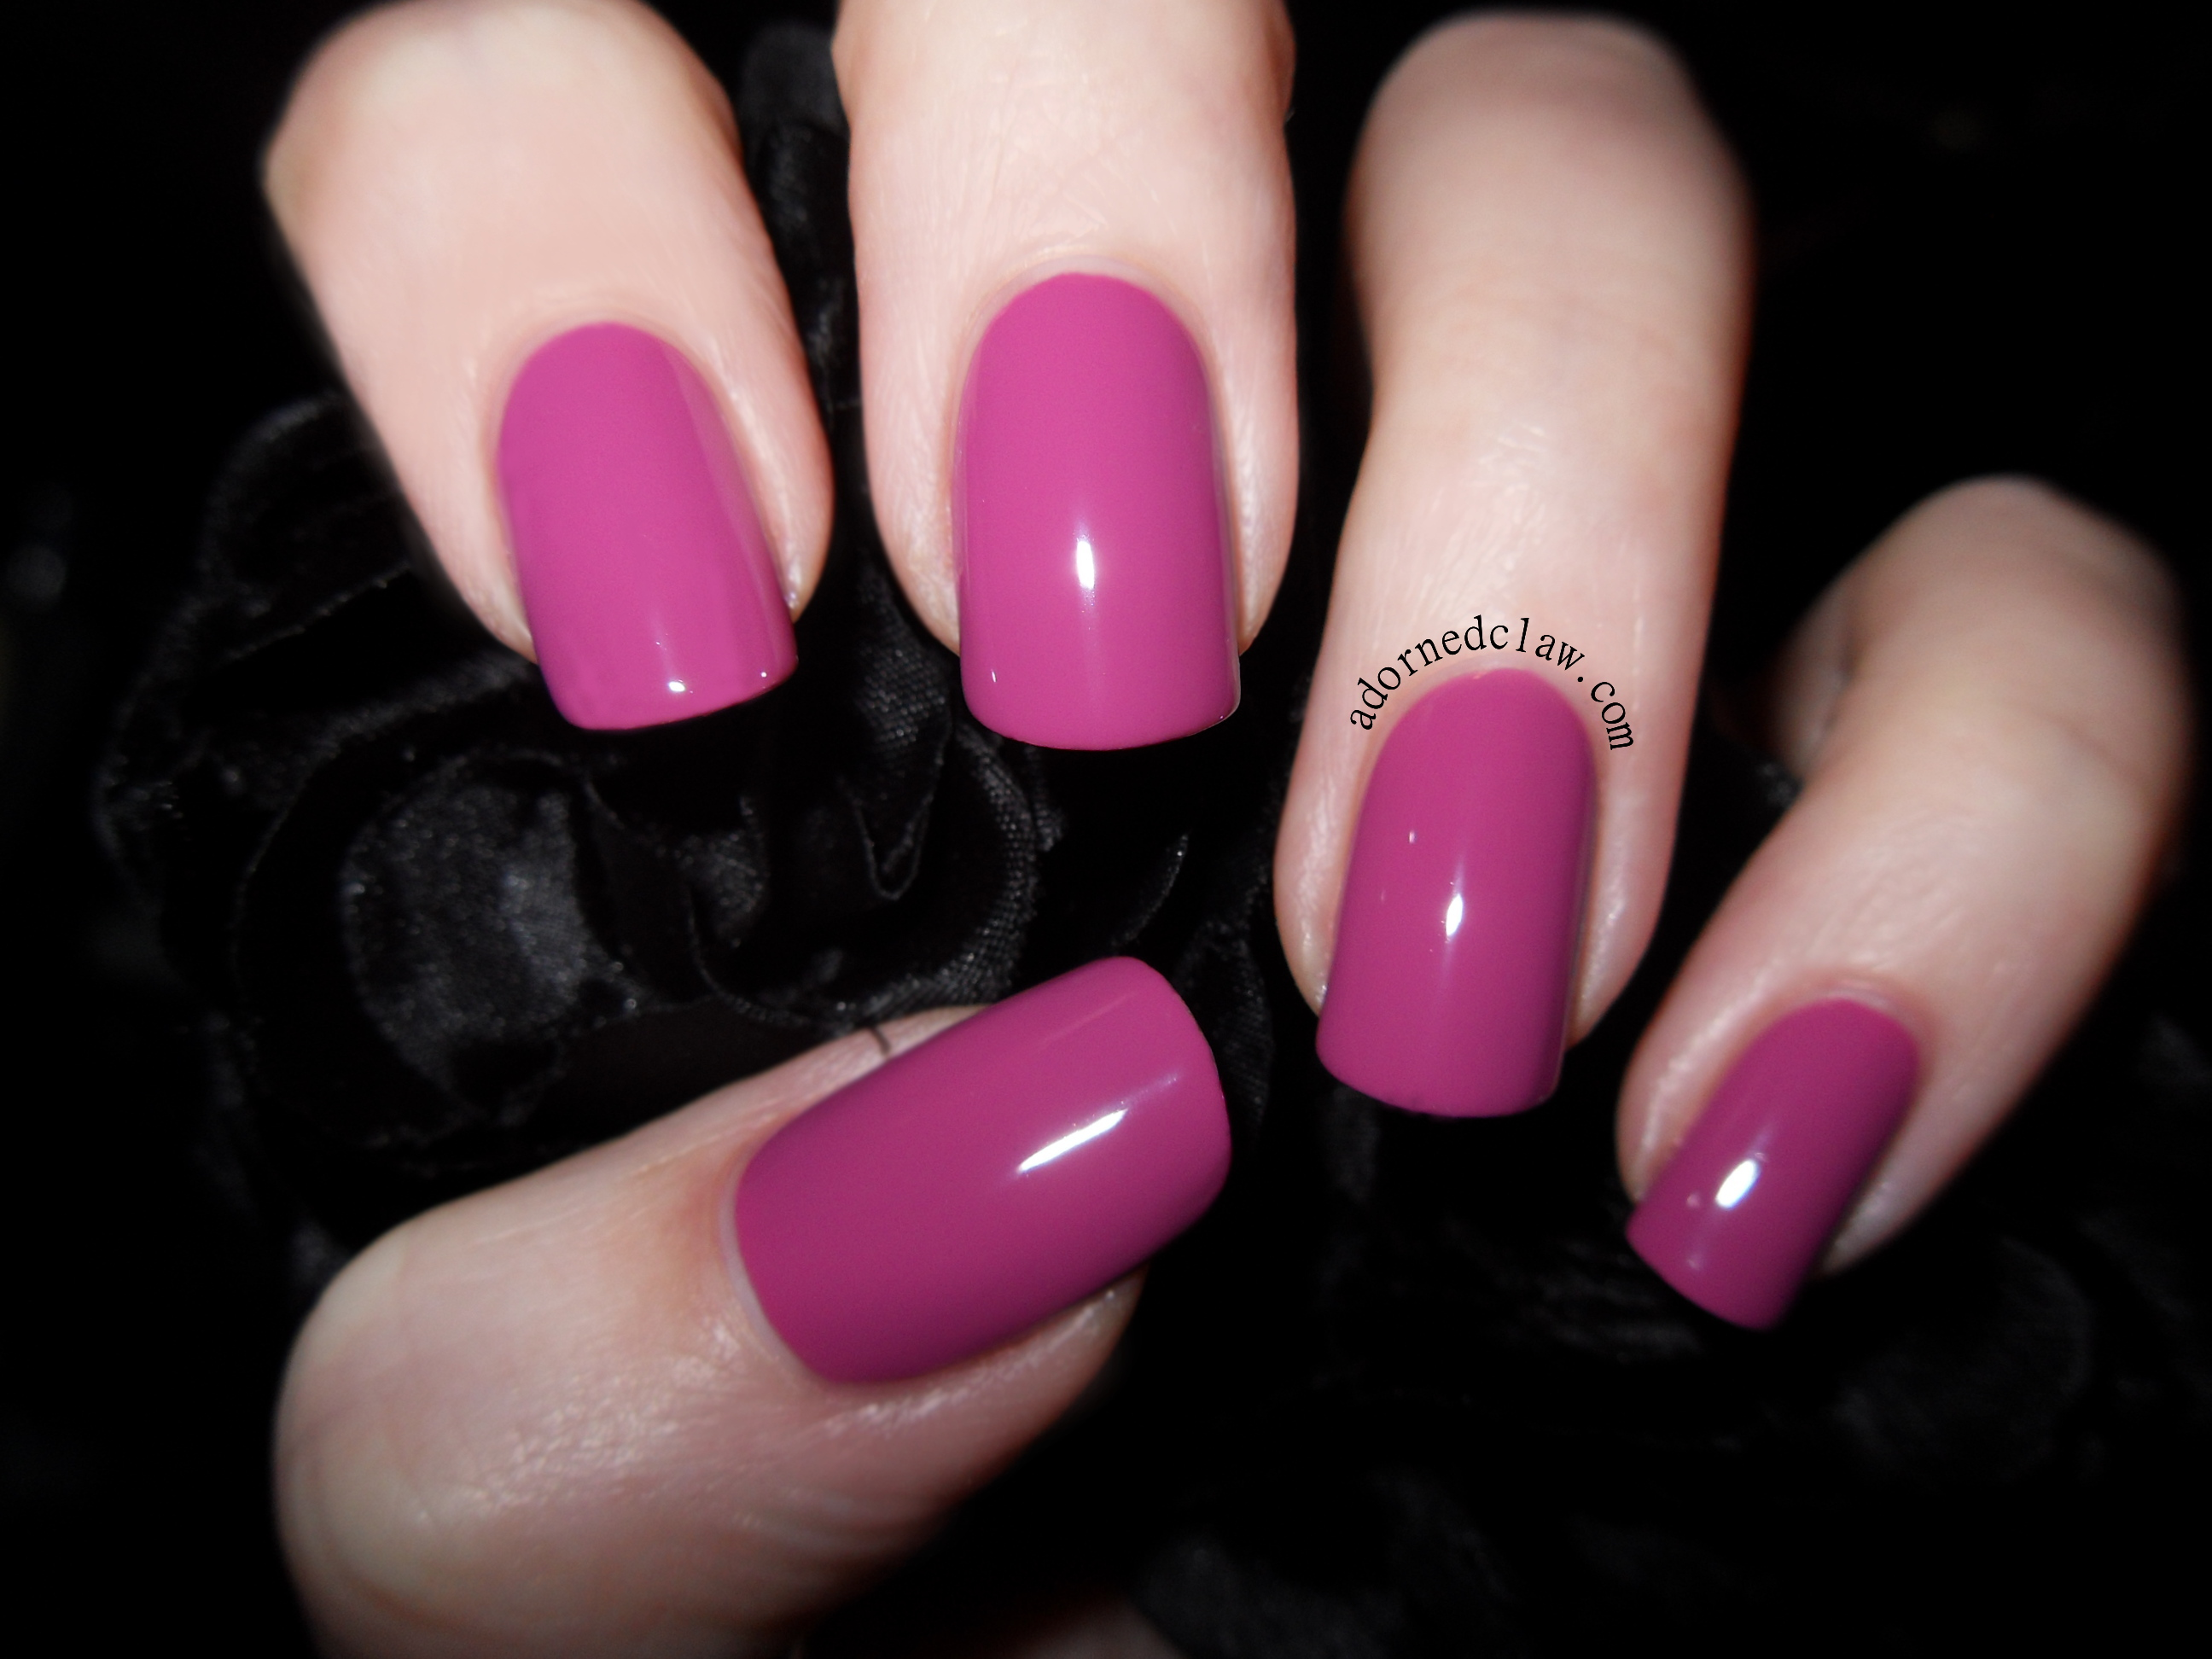 Avon matte nail polish in india nail ftempo - Candy diva futura ...